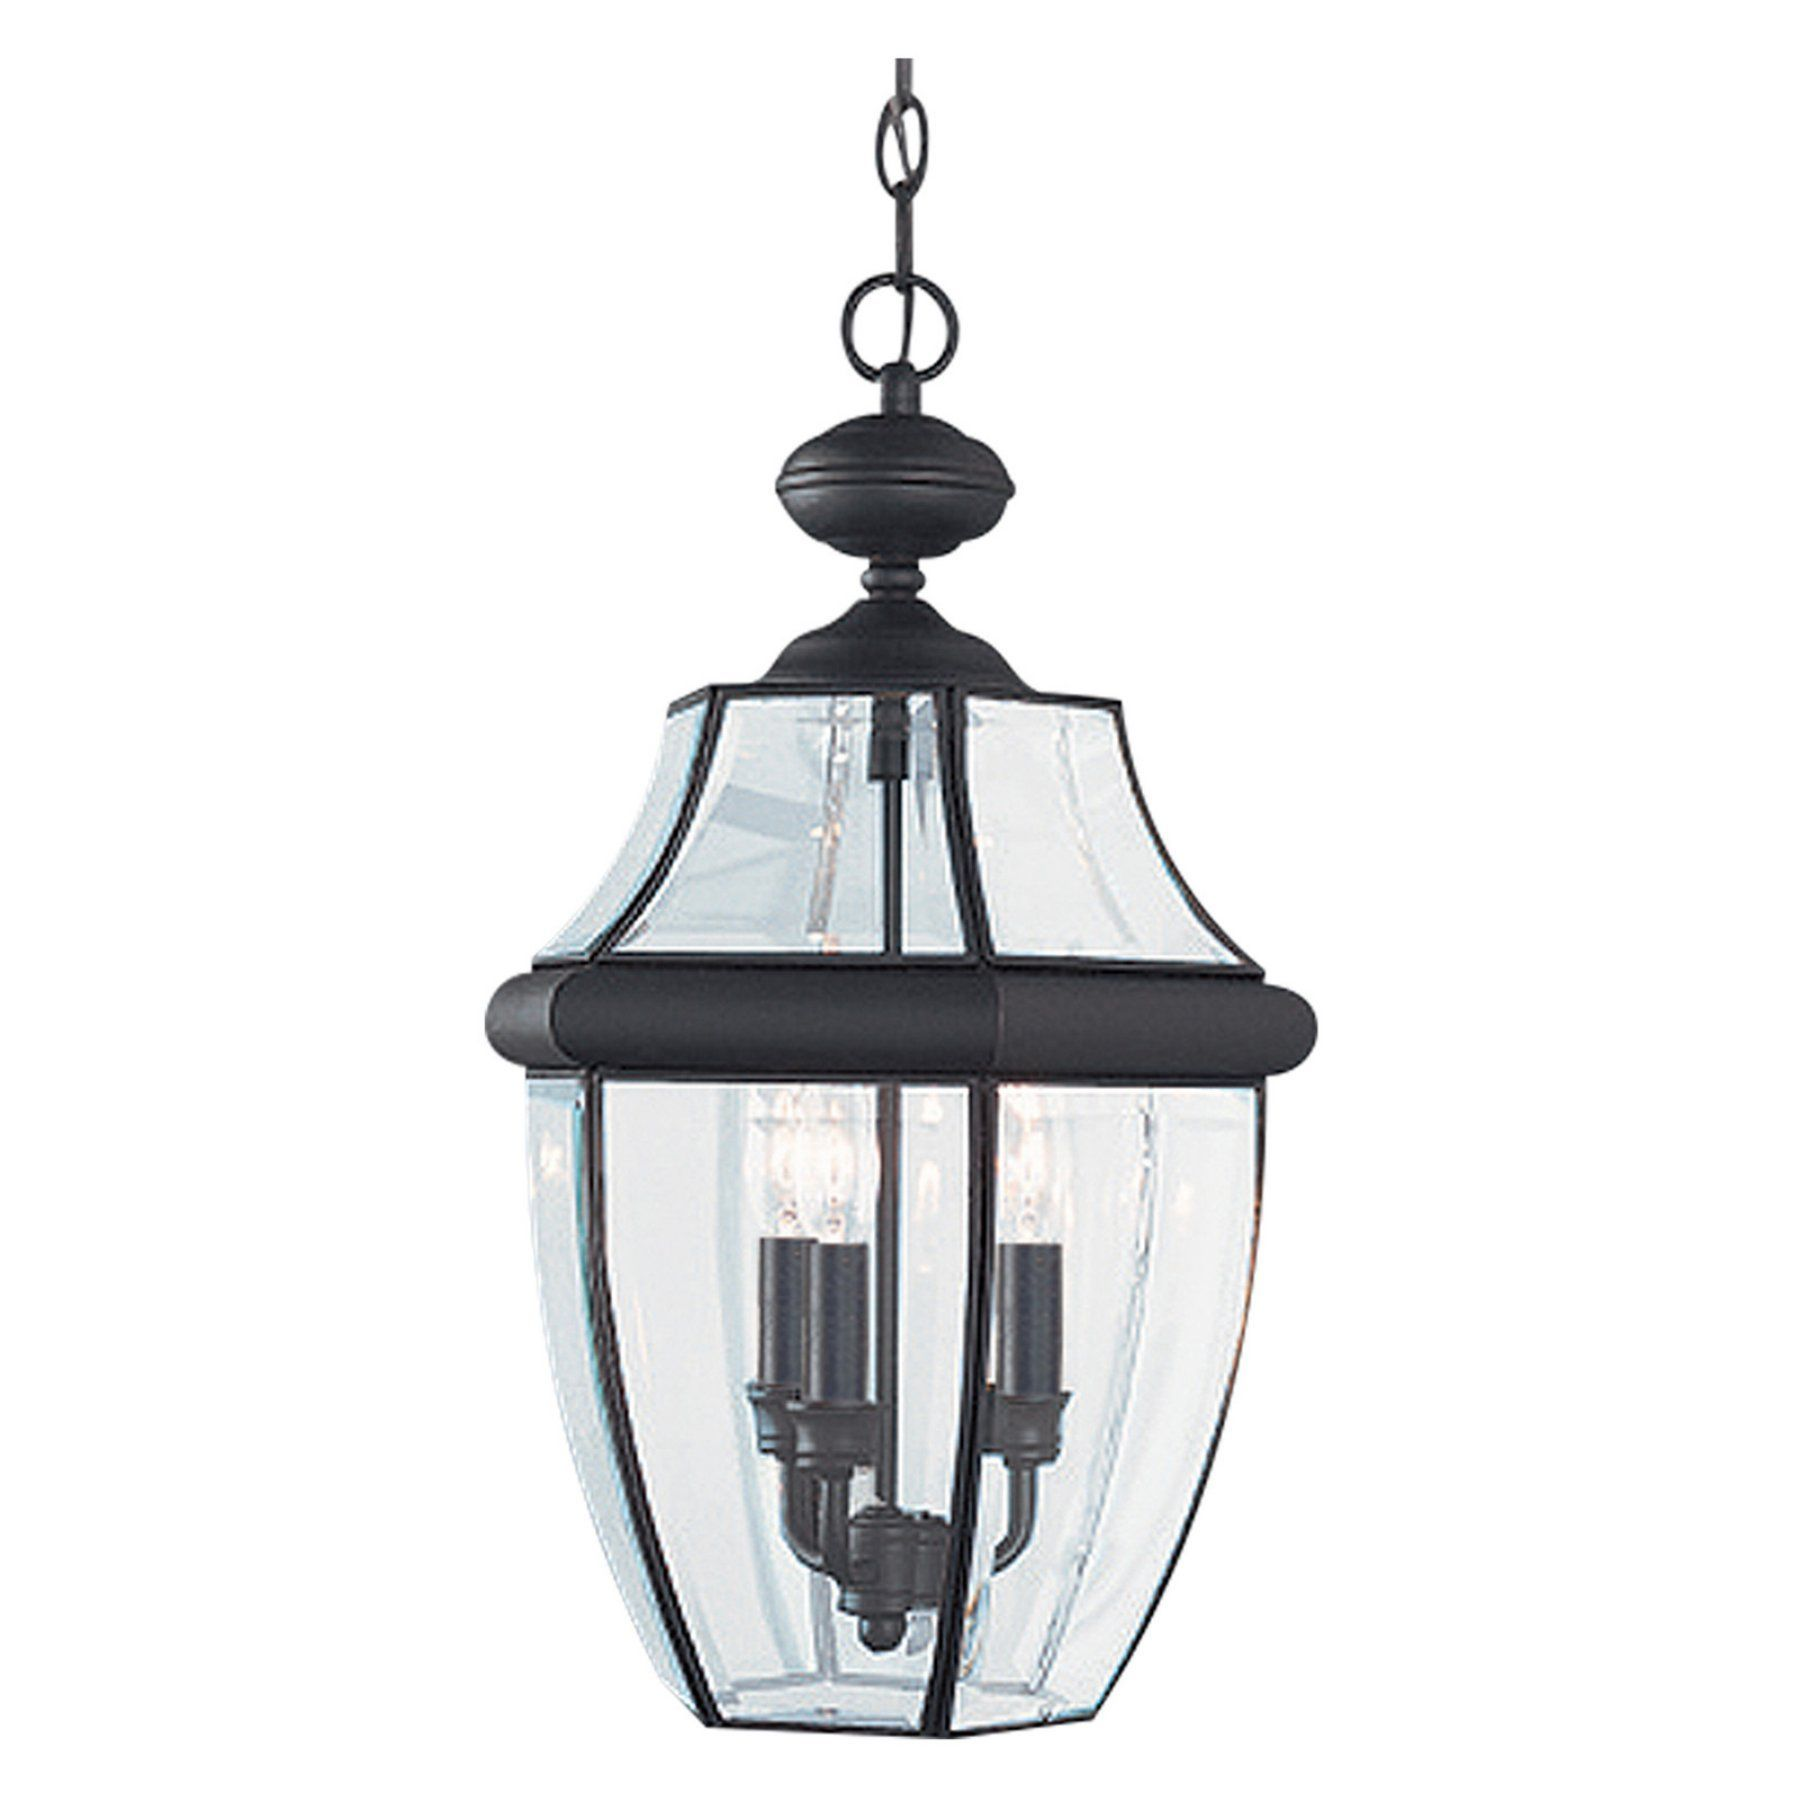 Sea Gull Lighting Lancaster 6039EN Outdoor Pendant Light